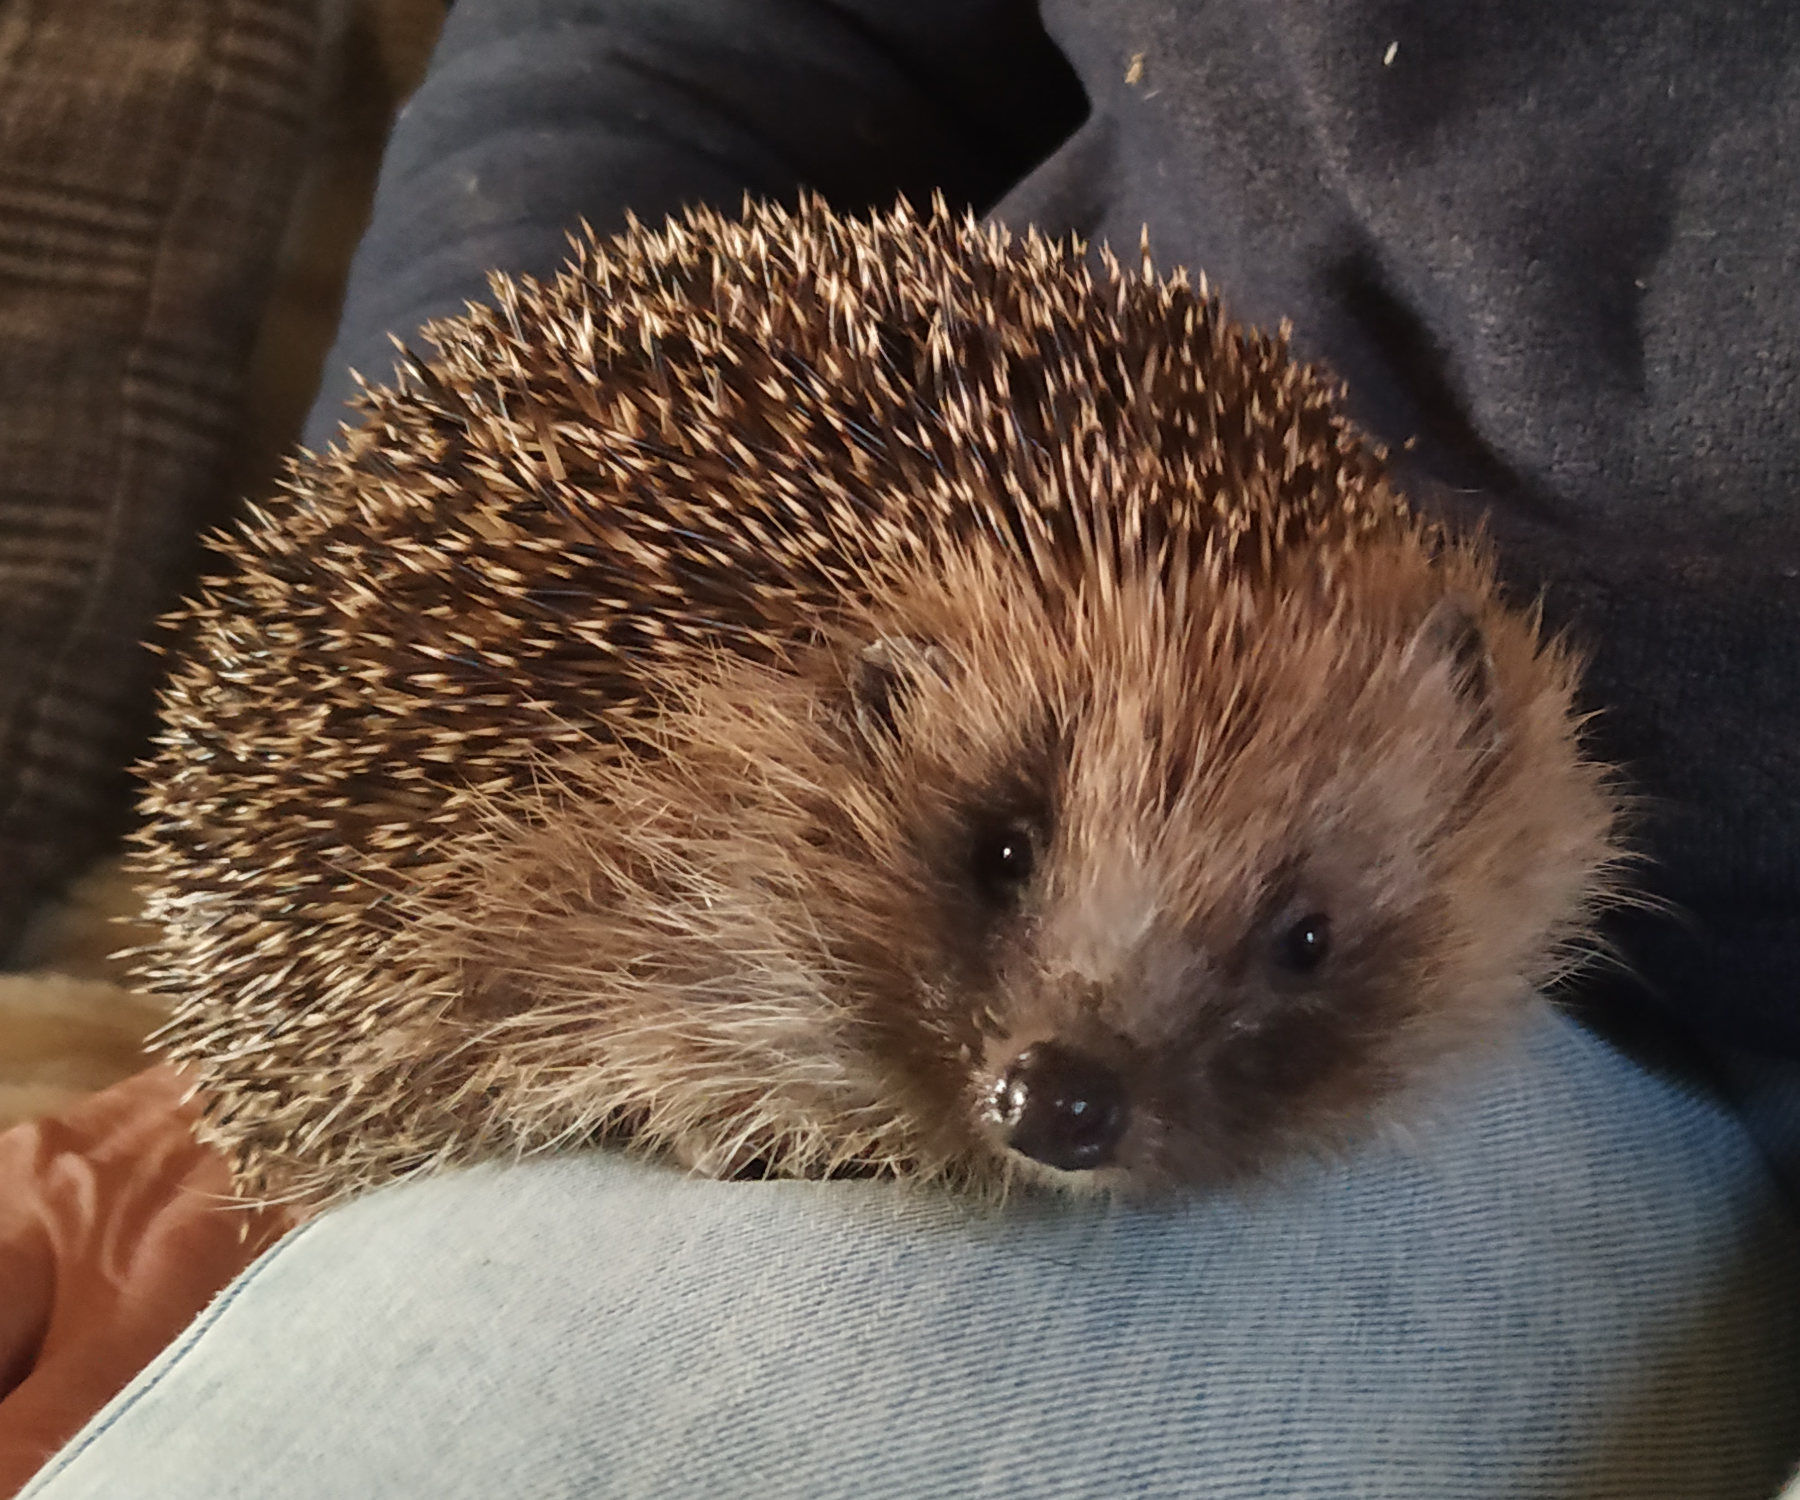 hoggy the hedgehog